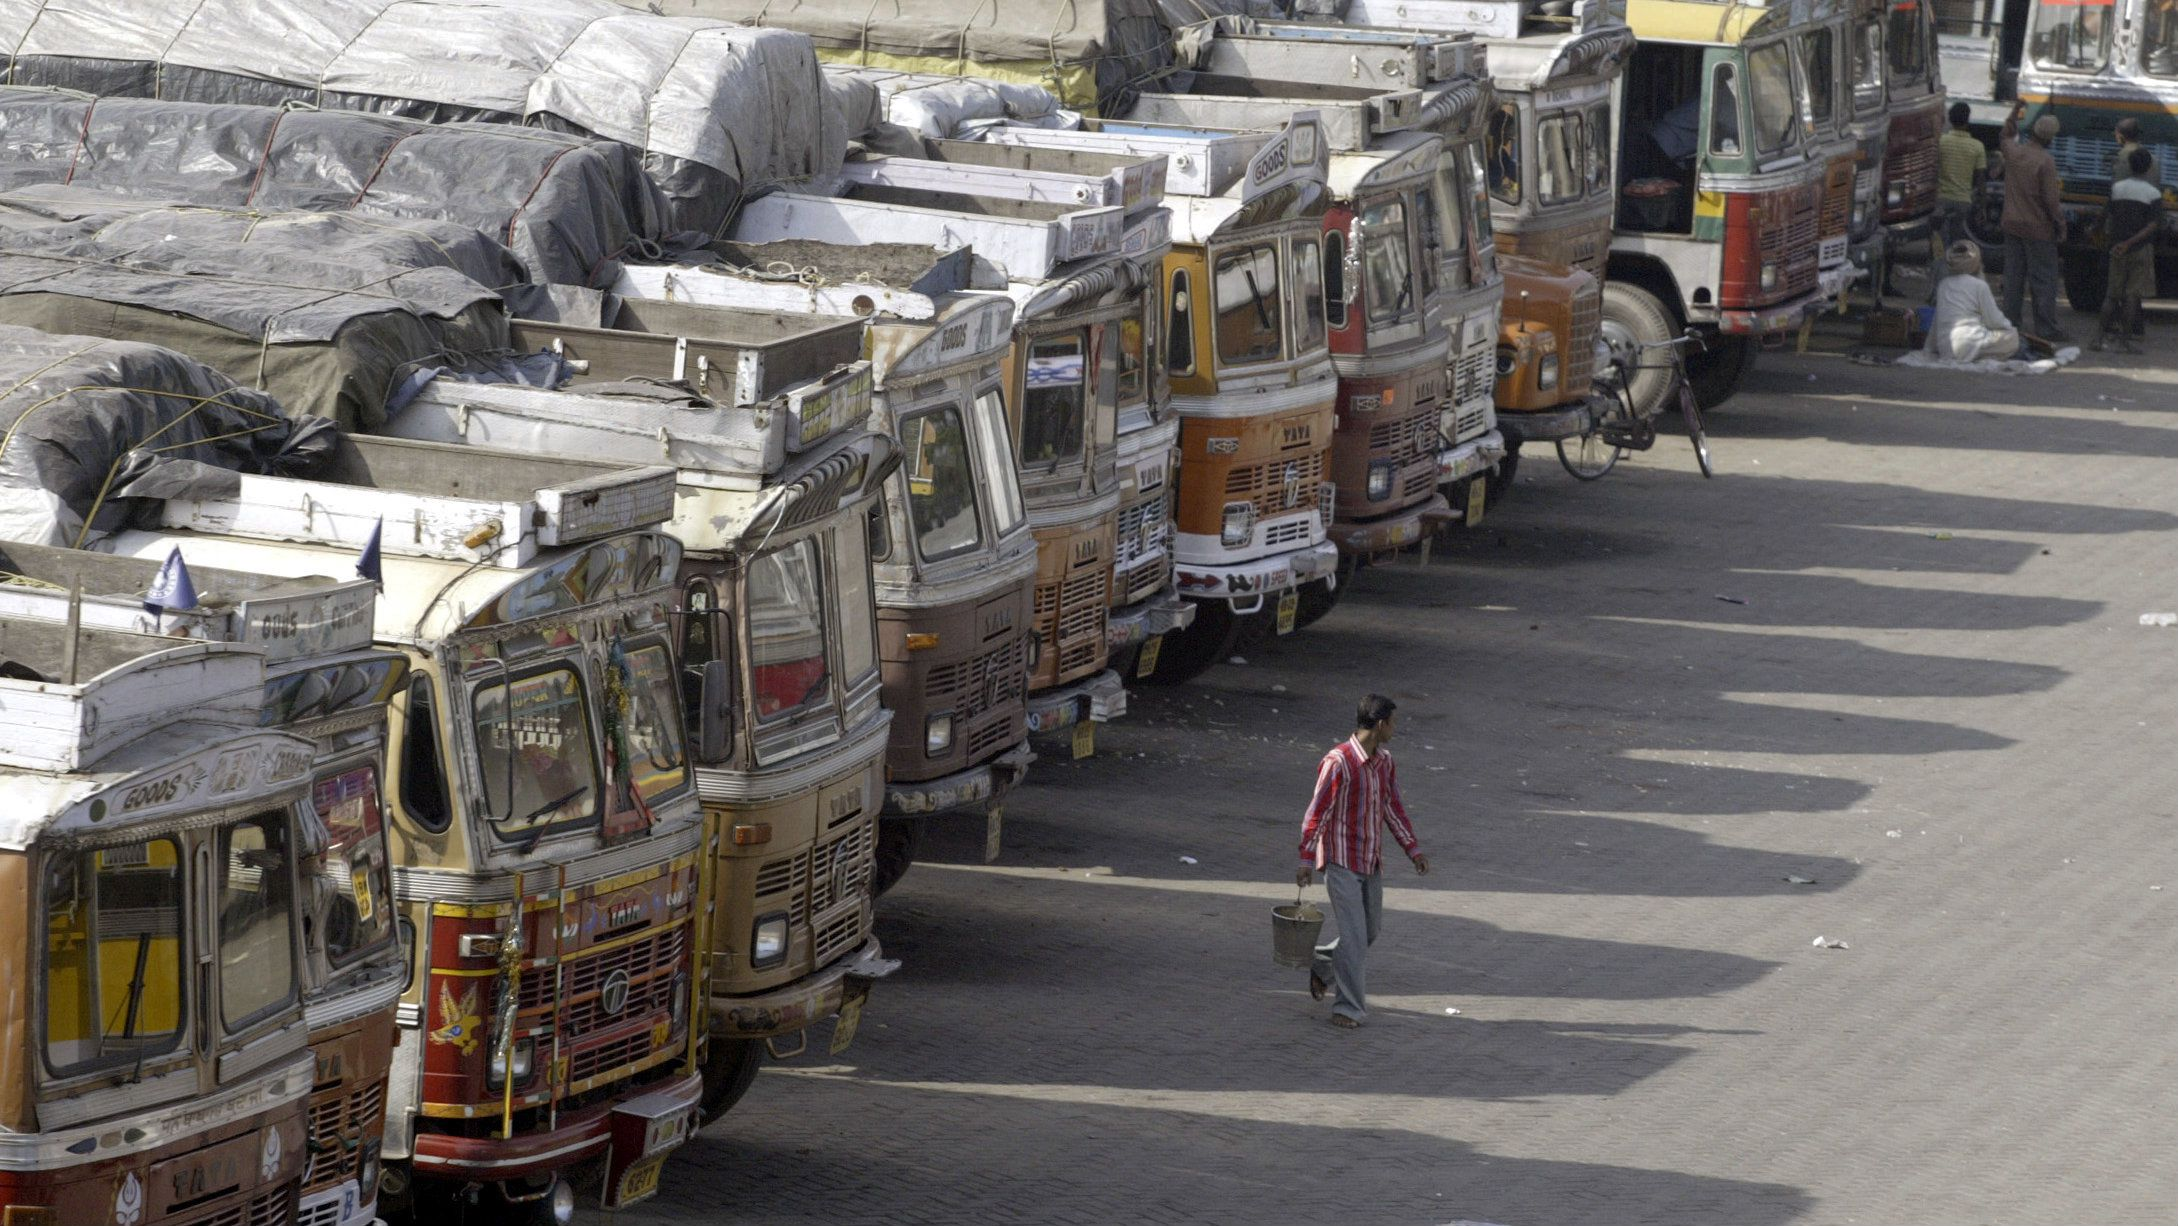 A man walks in a truck terminal near the India-Bangladesh border in Petrapole, about 80 km (49 miles) northwest from the eastern Indian city of Kolkata November 16, 2006. Thousands of trucks and people from both countries were stranded for the last four days due to political unrest in Bangladesh, local media reported. REUTERS/Parth Sanyal (INDIA)